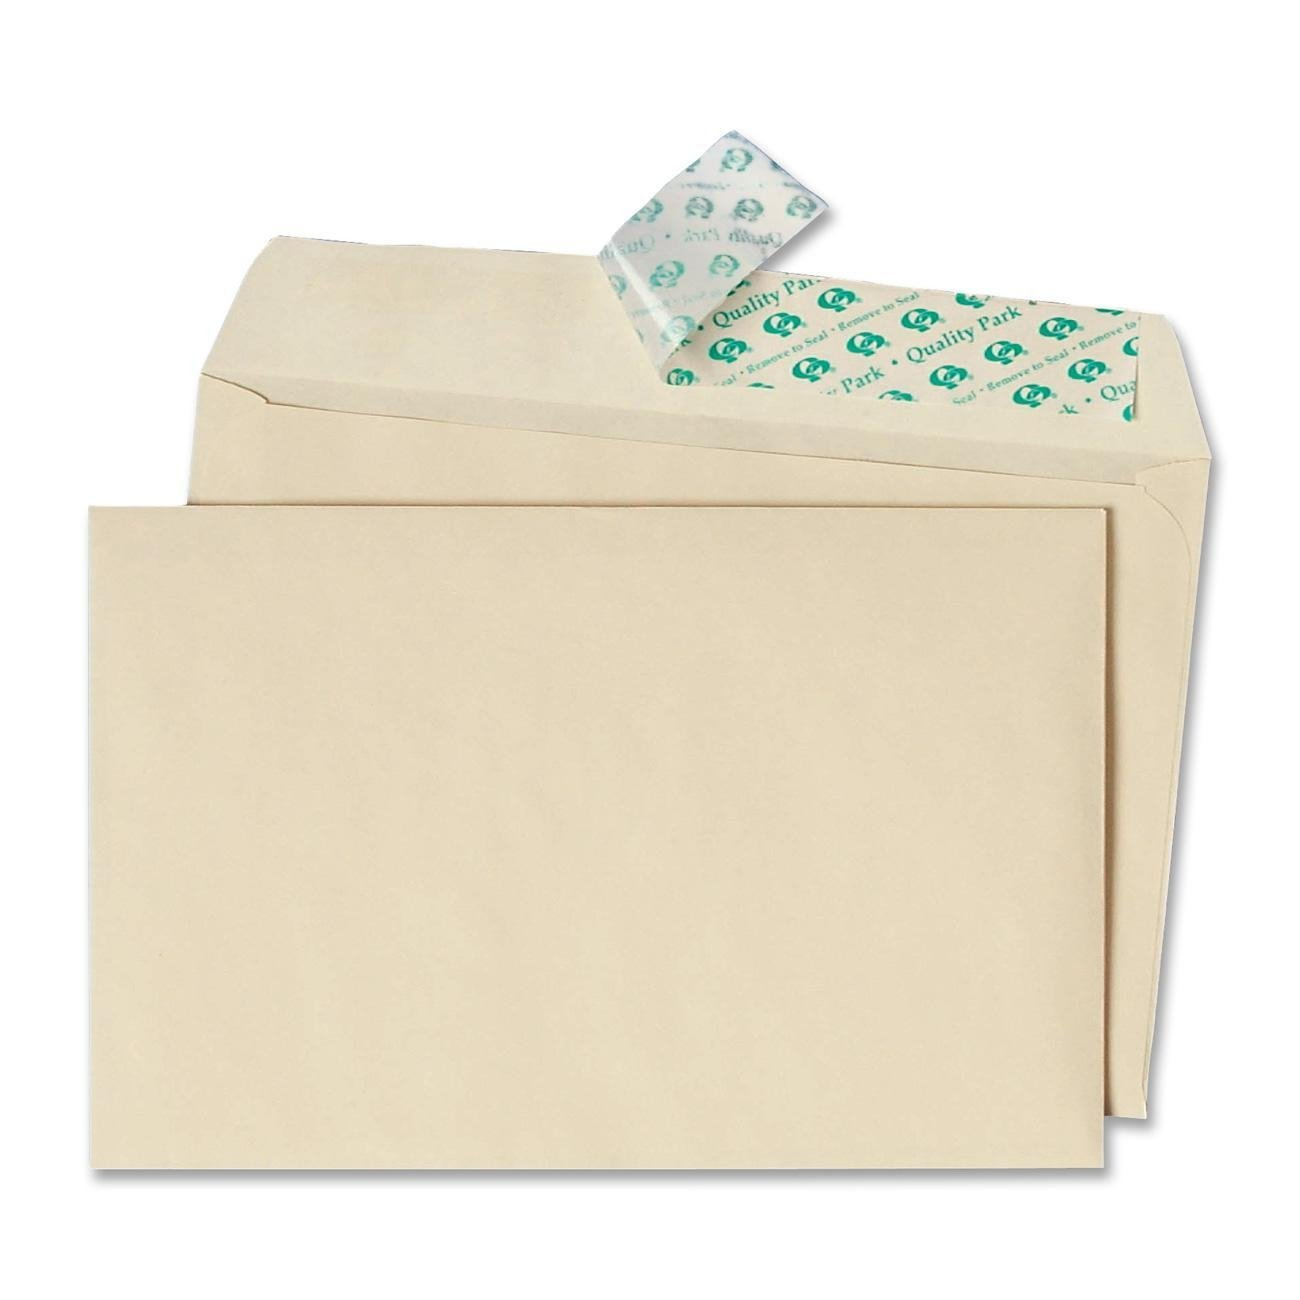 Quality Park Half-Fold Invitation Envelope 5.75 X 8.75 Inches Ivory Redi-Str.. 2